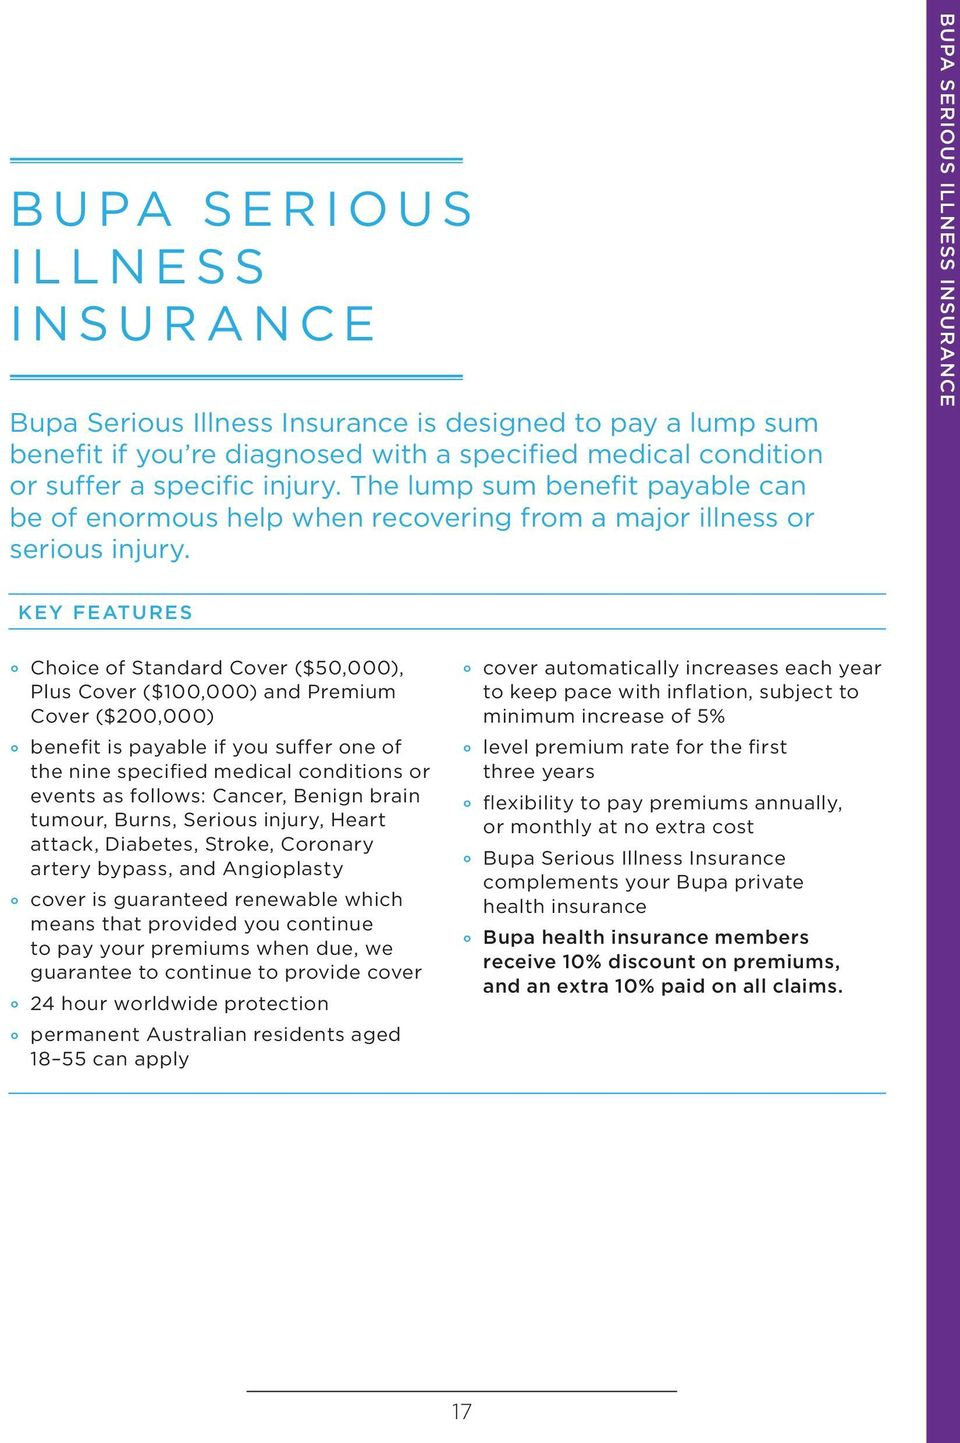 BUPA SERIOUS ILLNESS INSURANCE KEY FEATURES Choice of Standard Cover ($50,000), Plus Cover ($100,000) and Premium Cover ($200,000) benefit is payable if you suffer one of the nine specified medical